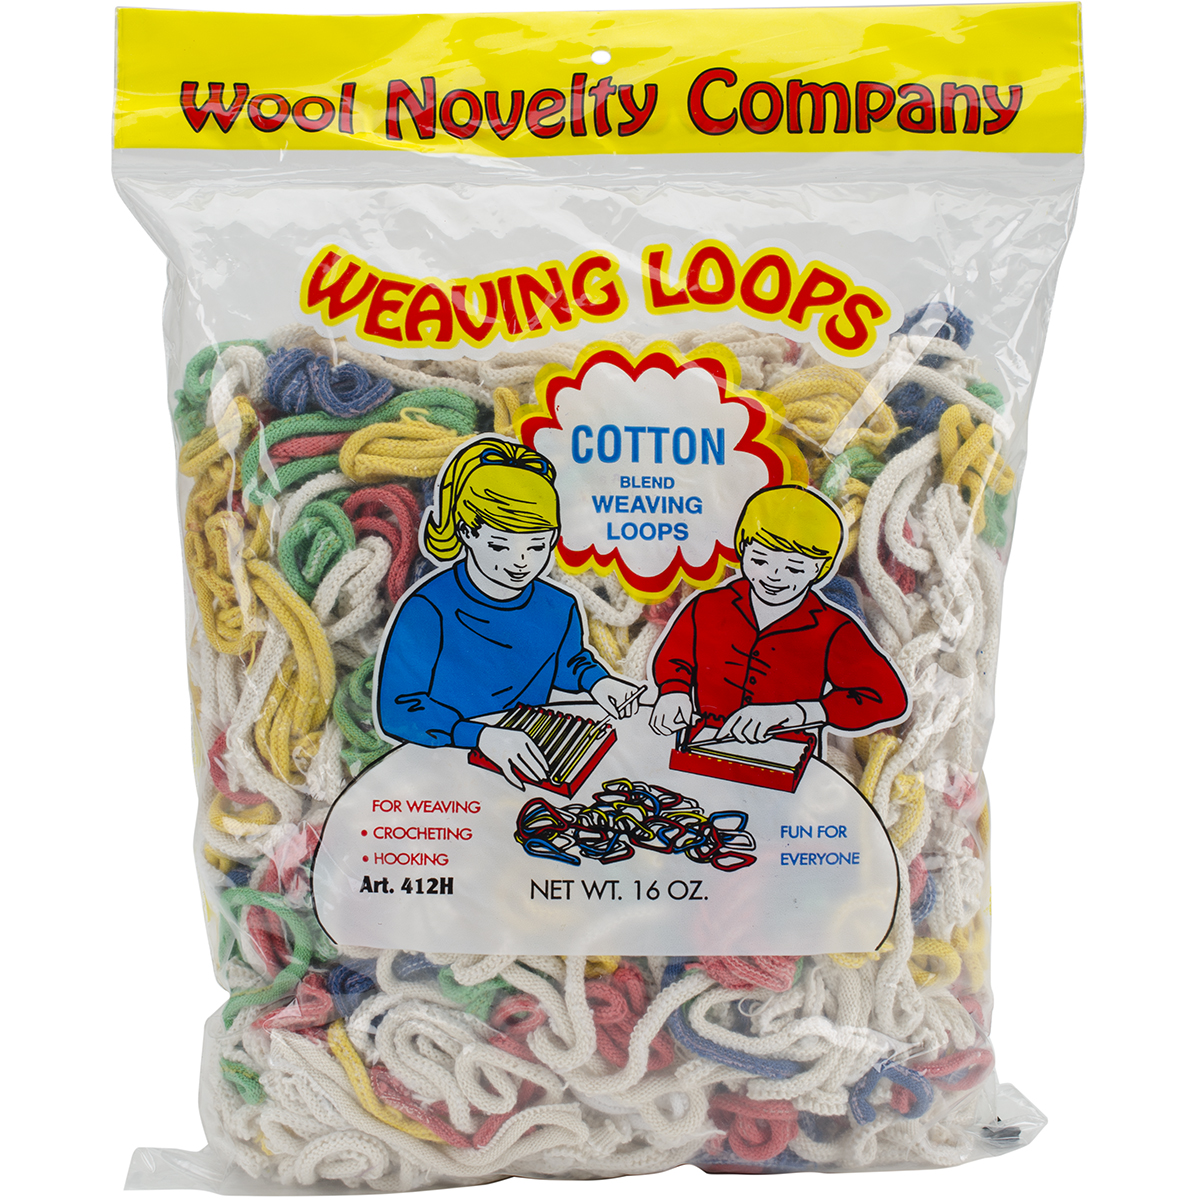 Wool Novelty Cotton Weaving Loops 16oz. Bag Primary Mix.